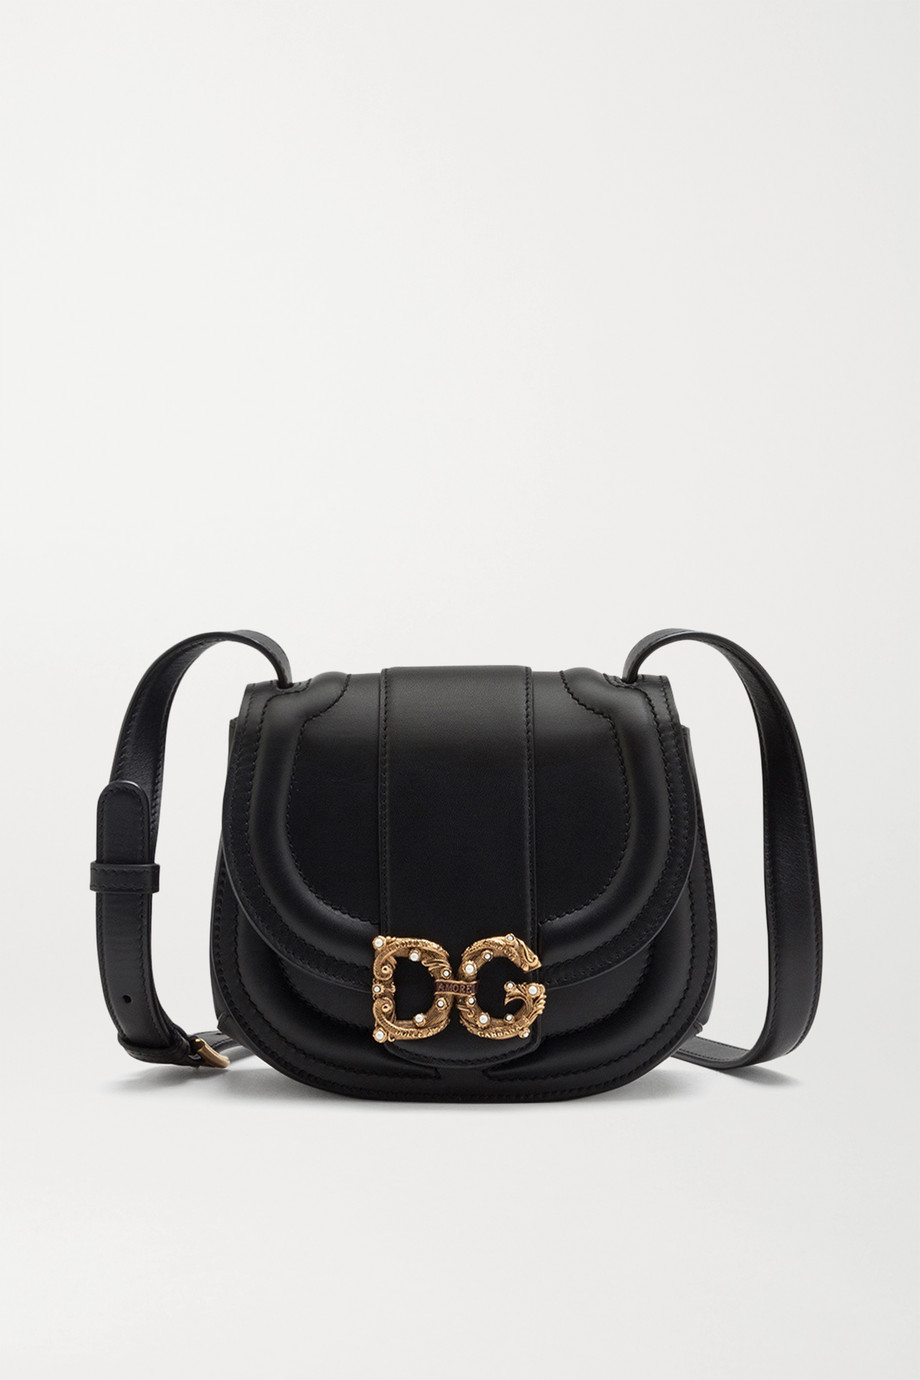 Dolce & Gabbana DG Amore embellished leather shoulder bag